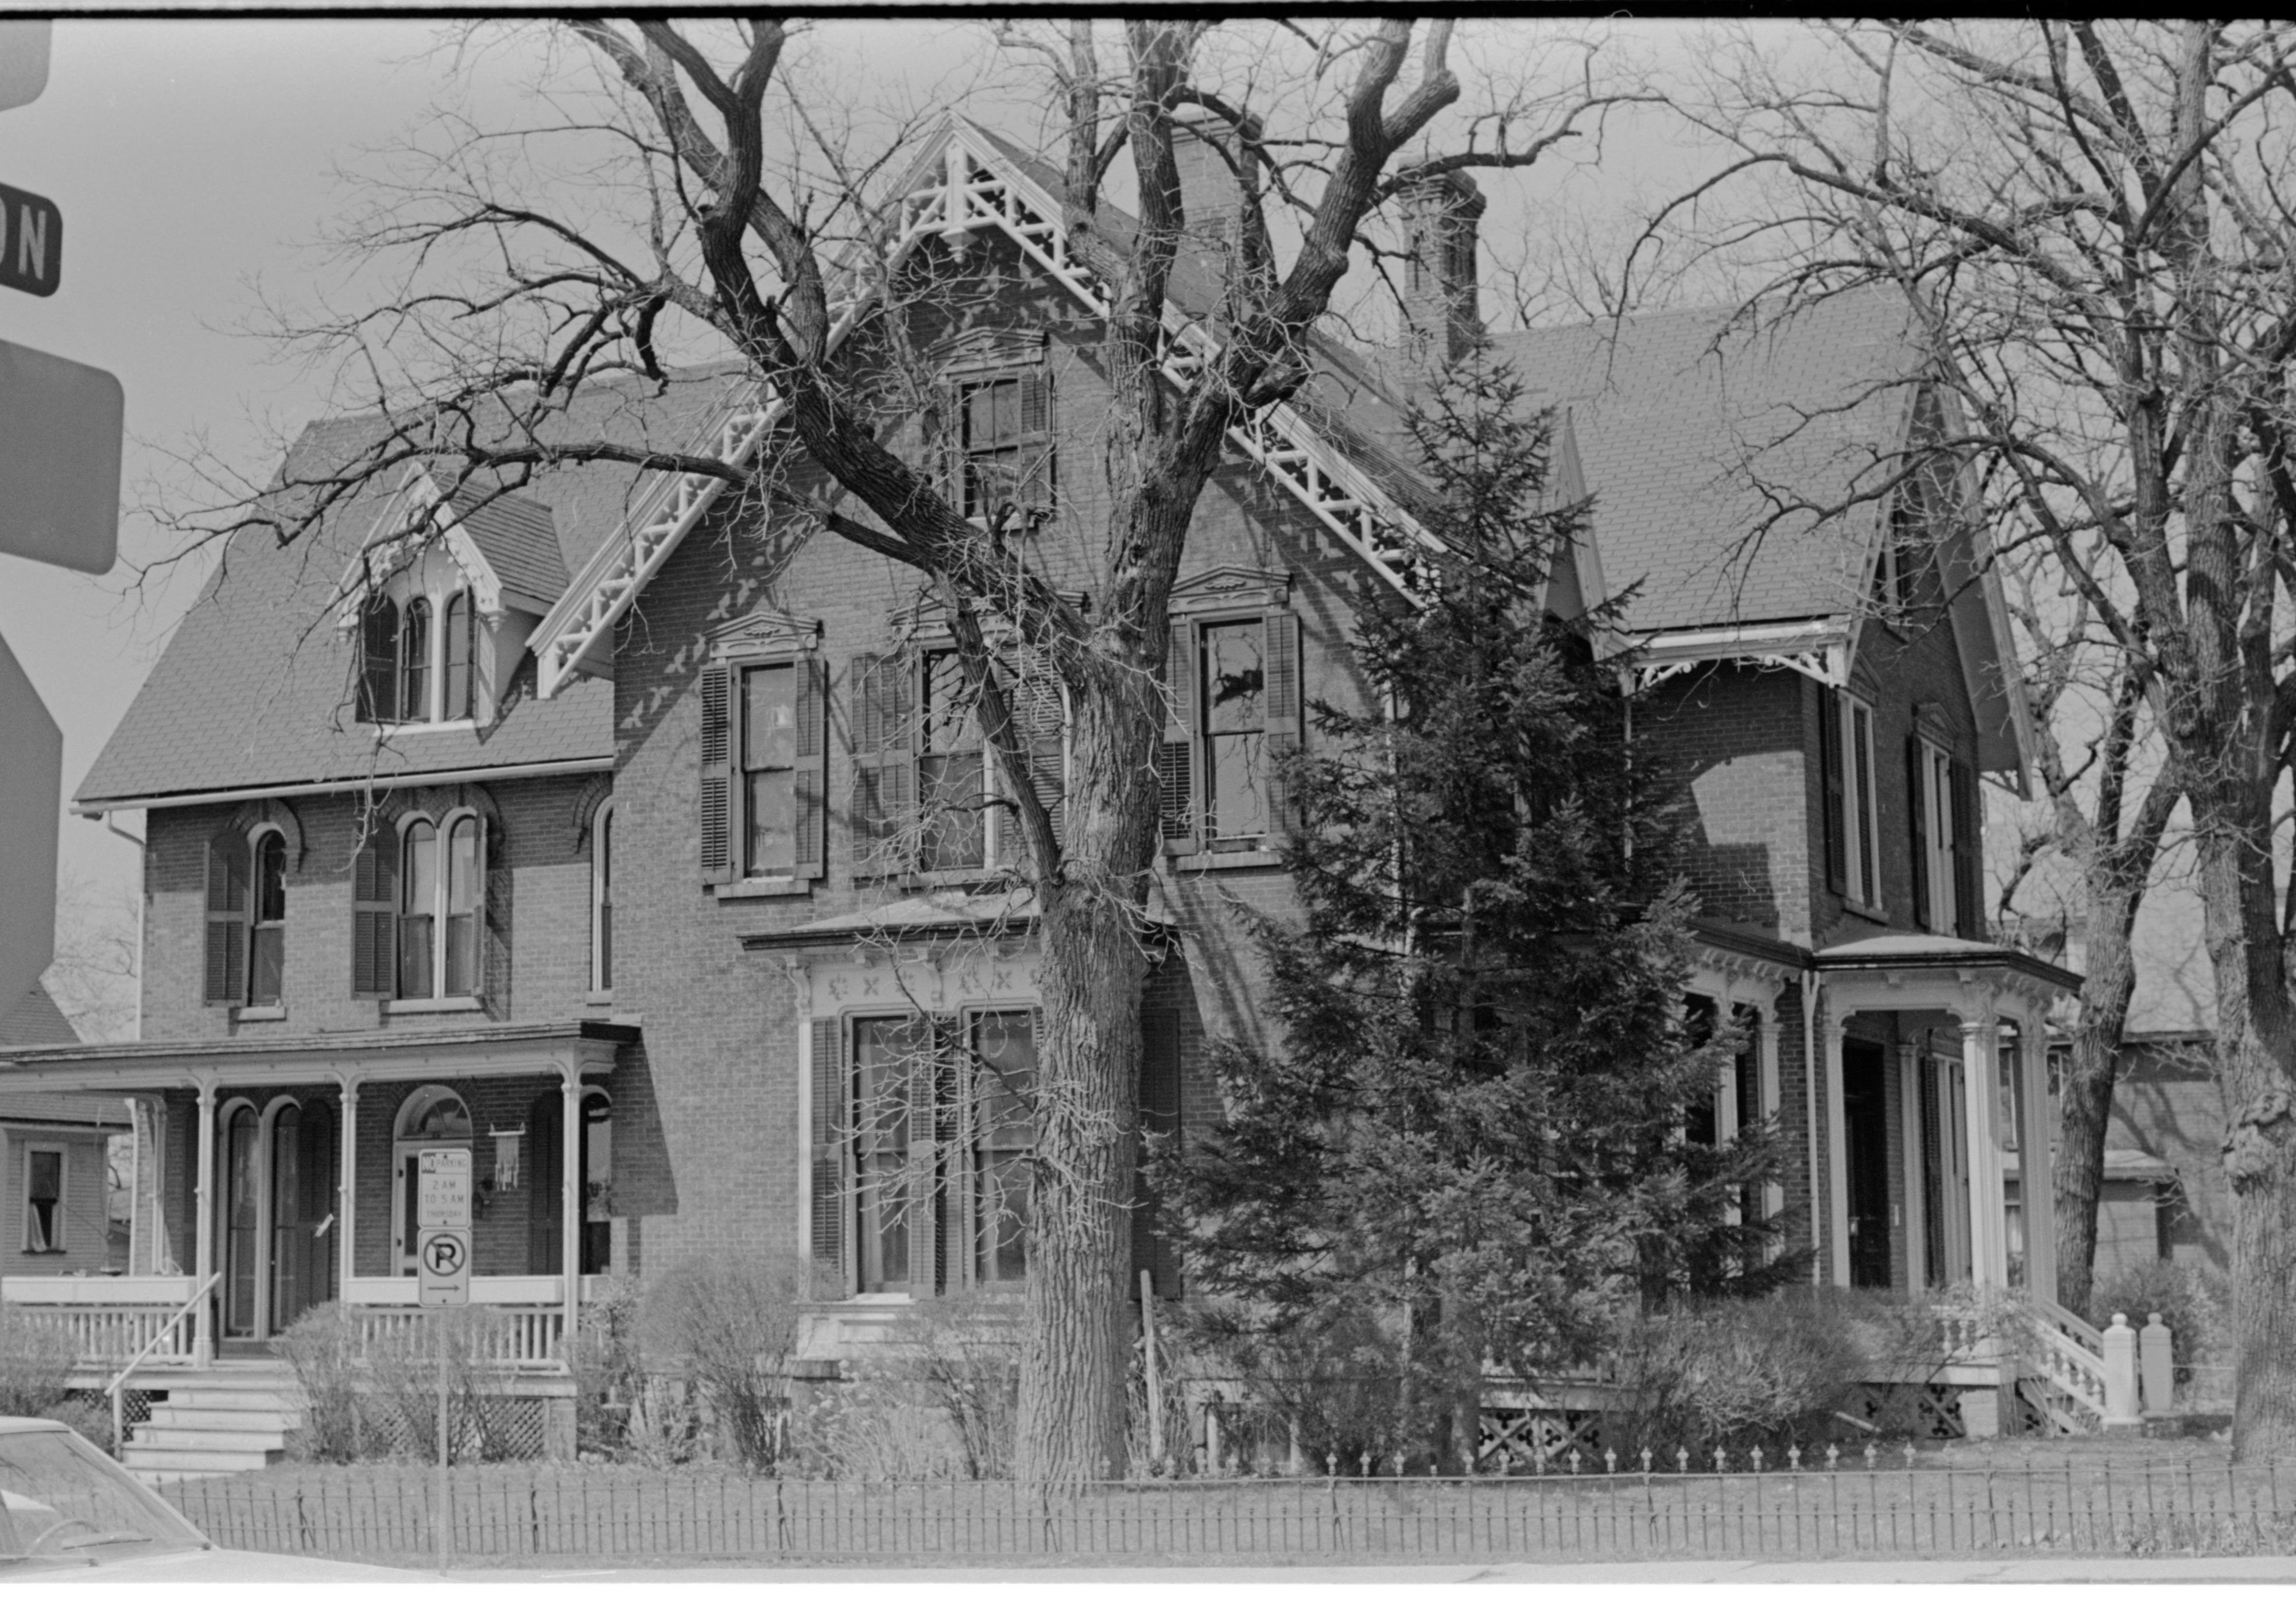 Historic Palmer-Ryan House, 205 N Division, April 1979 image